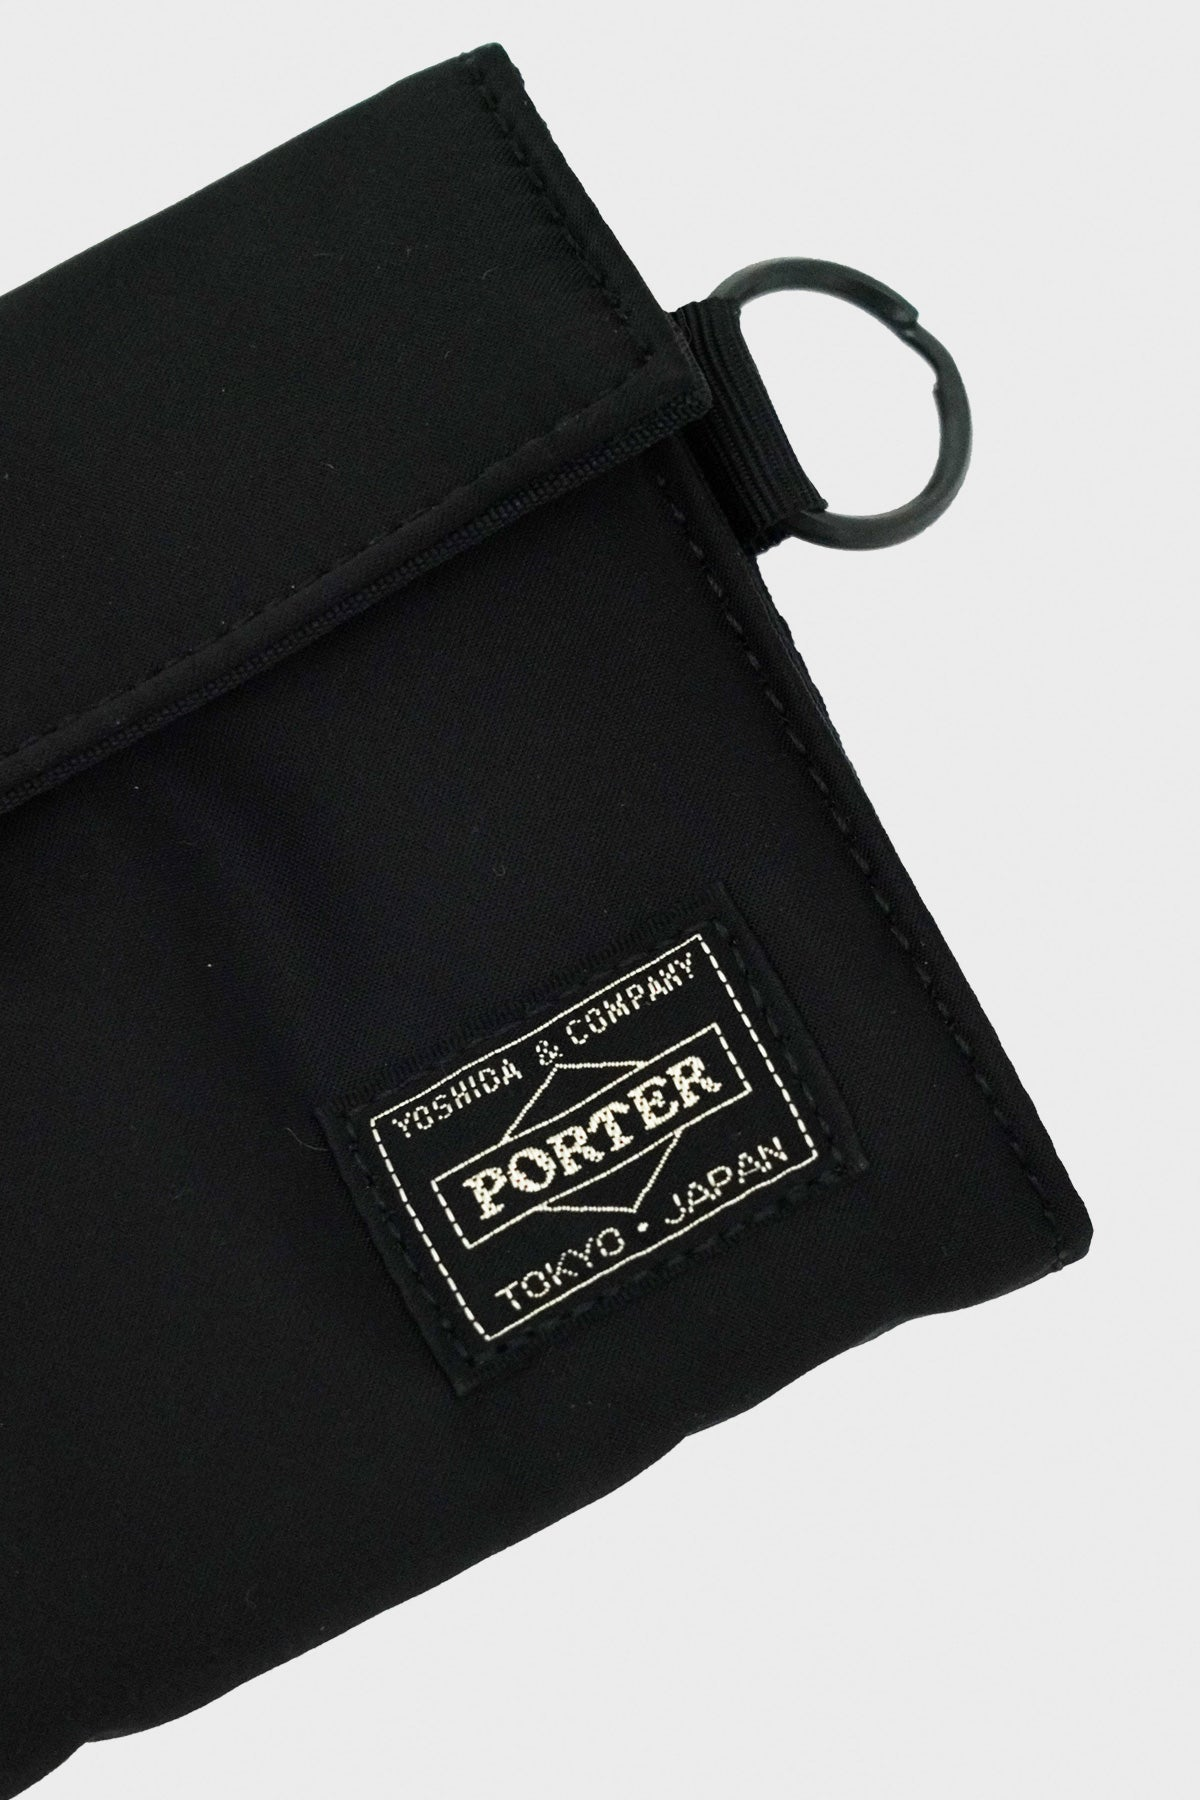 Porter Yoshida and Co - Wallet - Black - Canoe Club